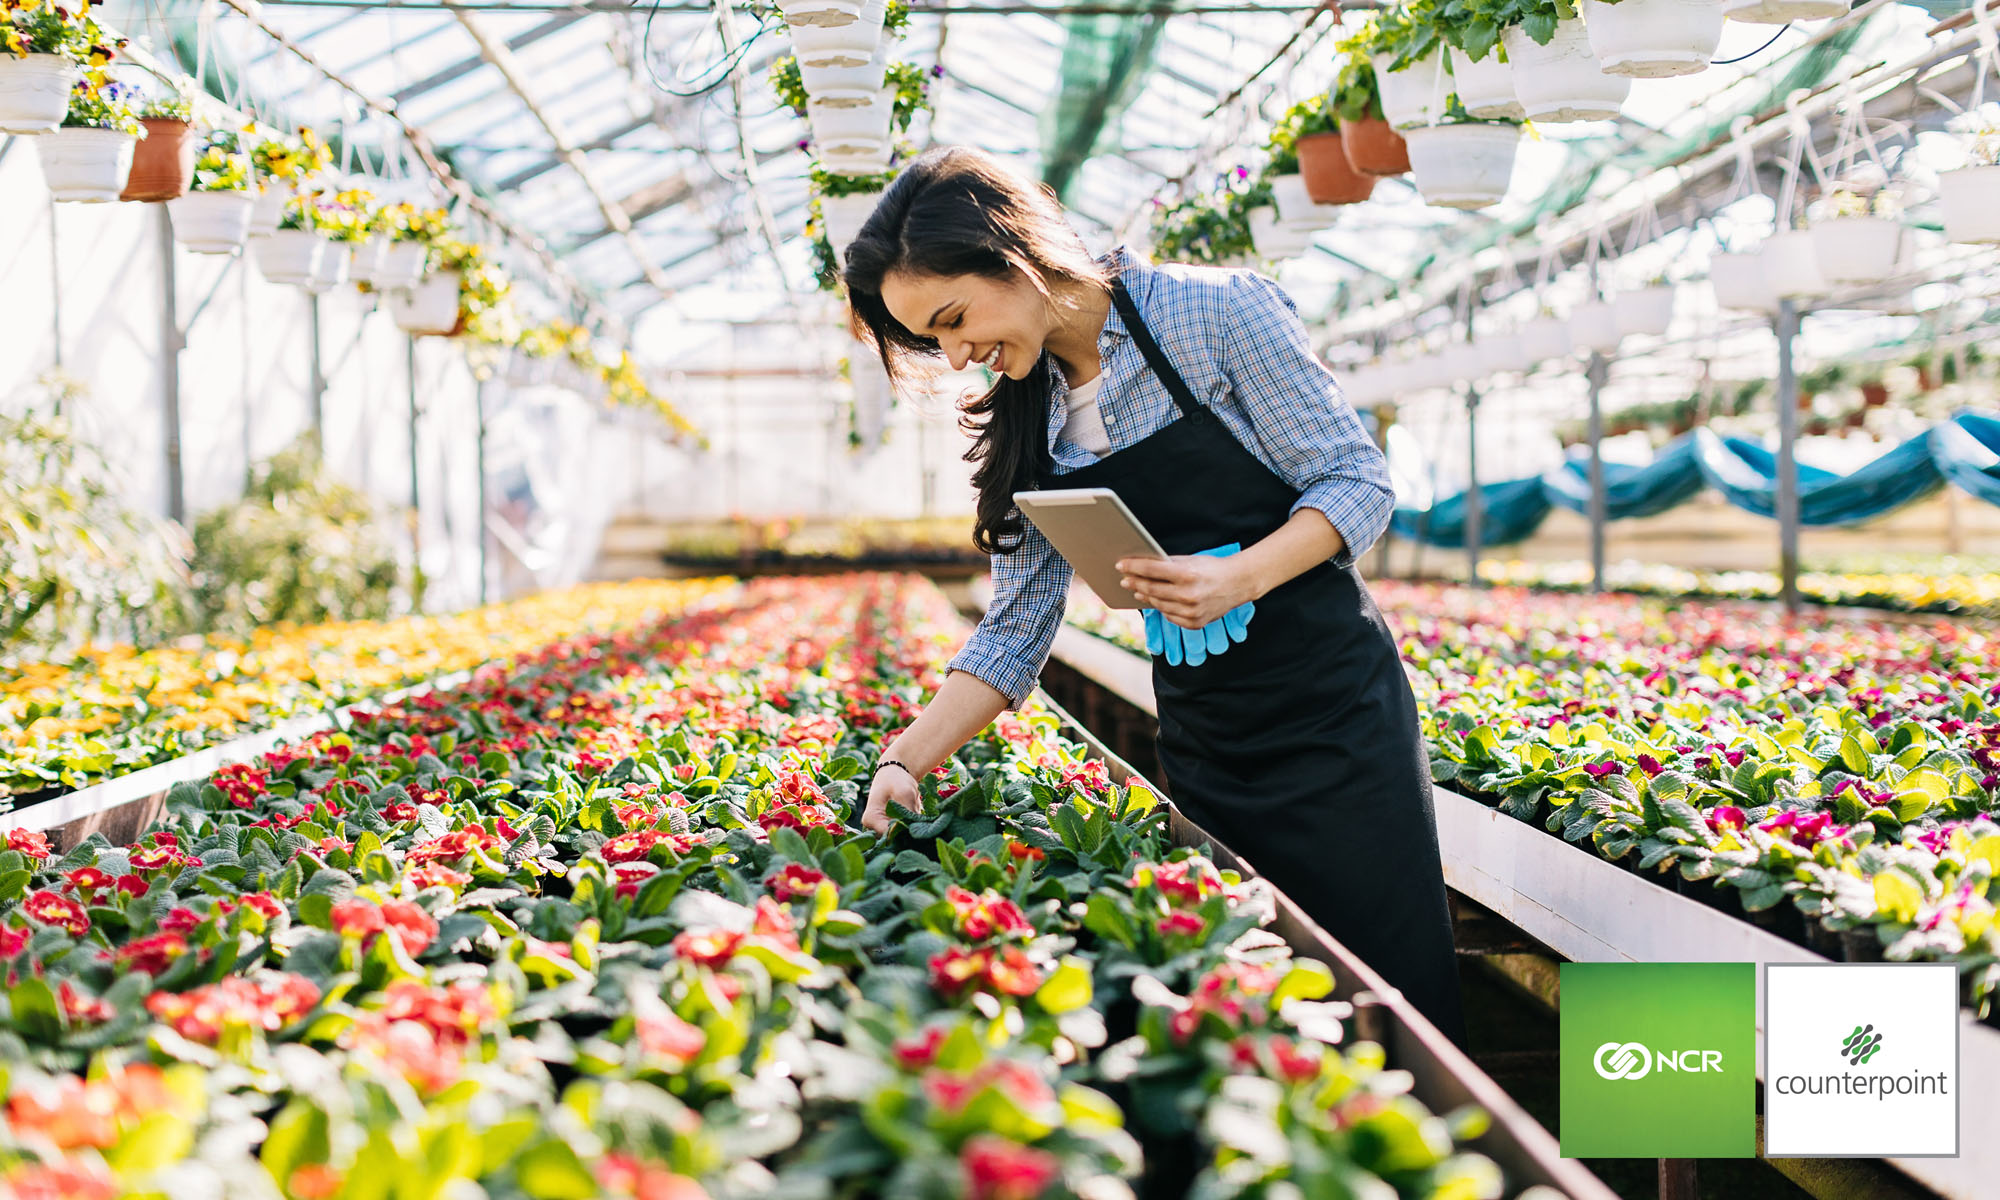 Lawn And Garden Retailers Nationwide Depend On Ncr Counterpoint As Their Pos System To Manage Diverse Lists Of Vendors Monitor A Constantly Changing